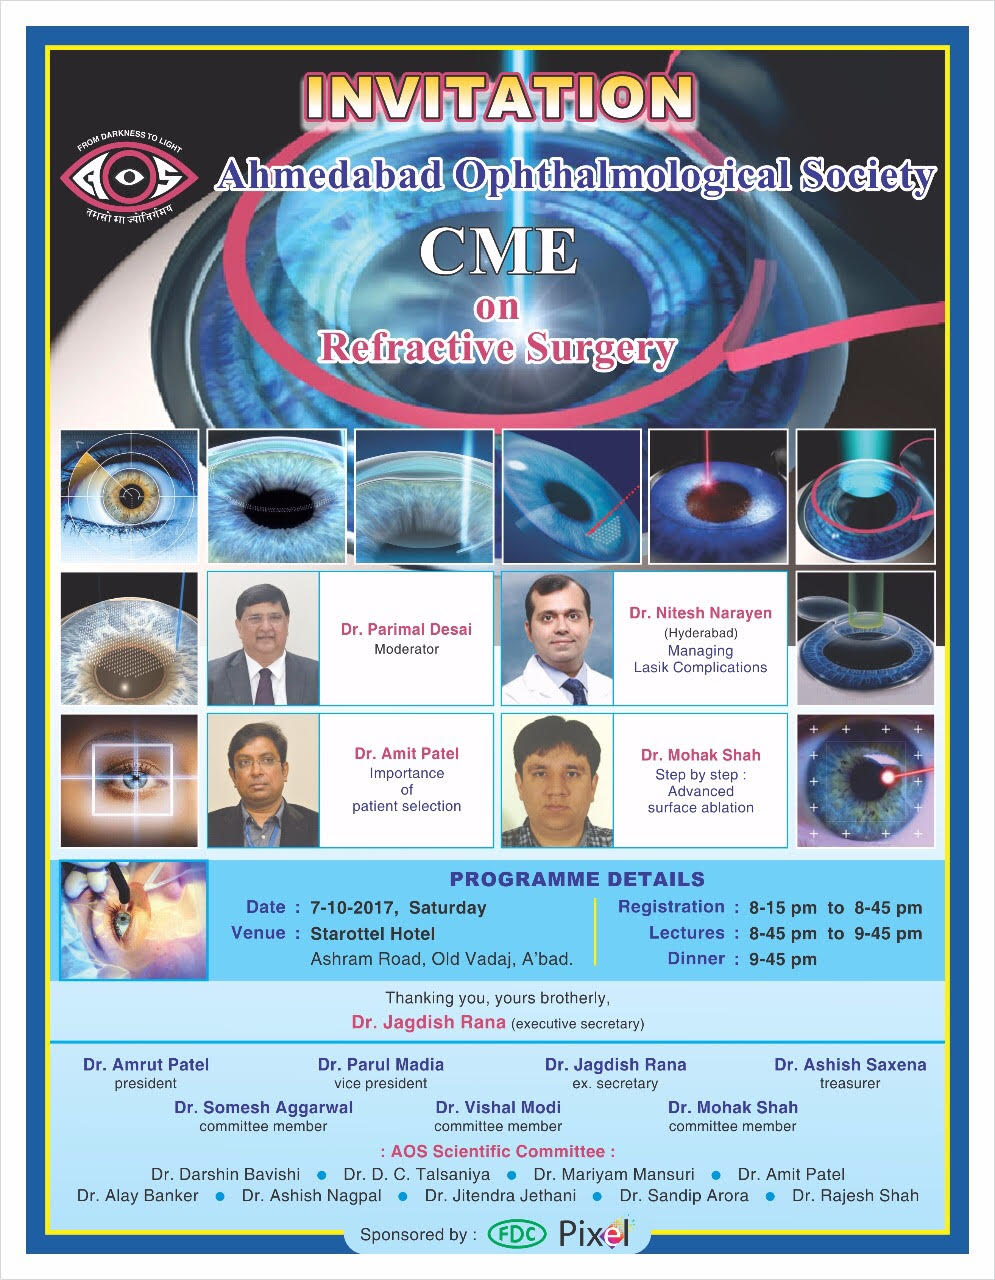 Ahmedabad Ophthalmological Society - CME on Refractive Surgery